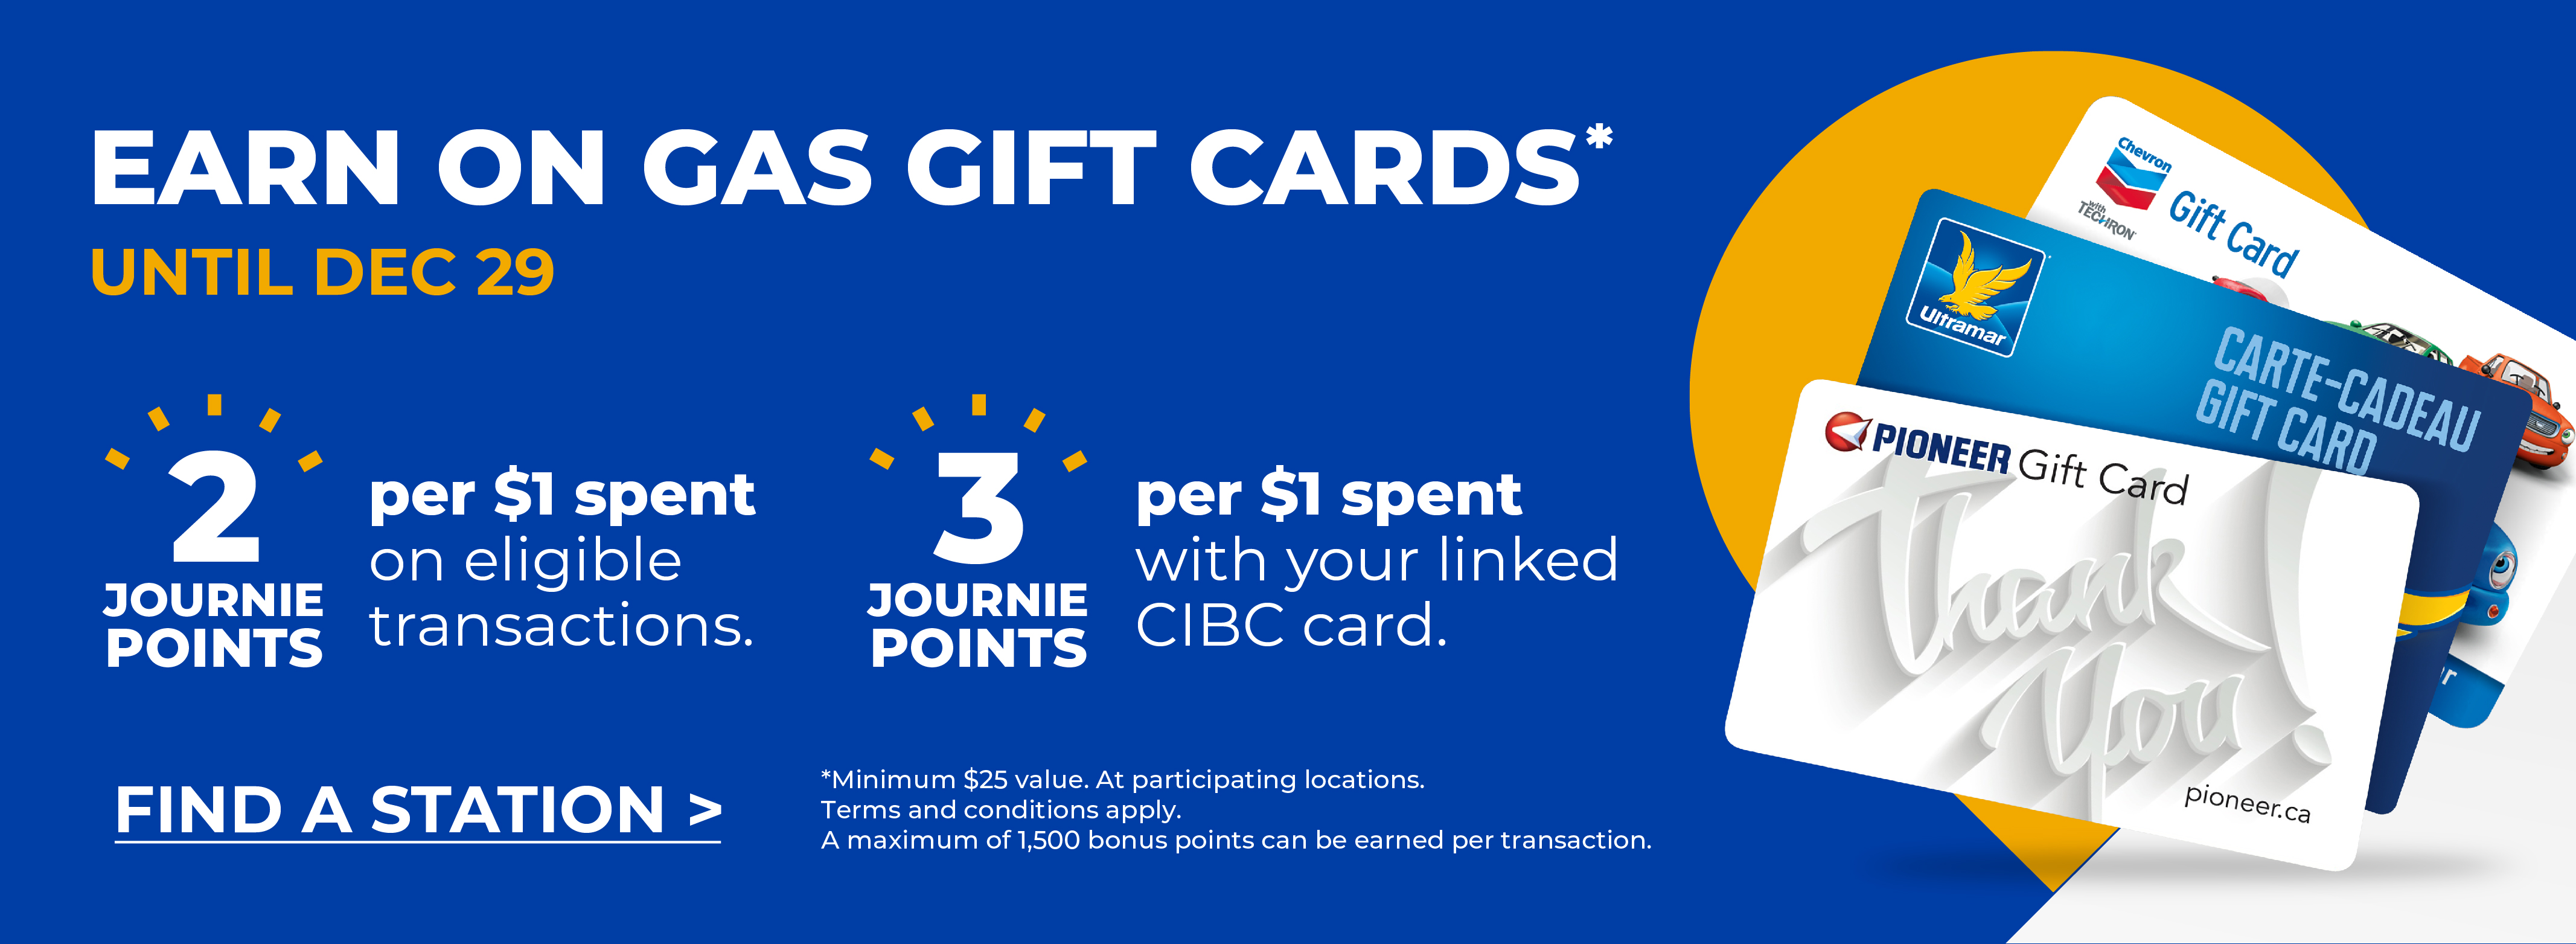 EARN ON GAS GIFT CARDS* LIMITED TIME ONLY. 2 JOURNIE Points per $1 spent on eligible transactions. 3 JOURNIE Points per $1 spent with your linked CIBC card. Find a station. *Minimum $25 value. At participating locations. Terms and conditions apply. A maximum of 1,500 bonus points can be earned per transaction.